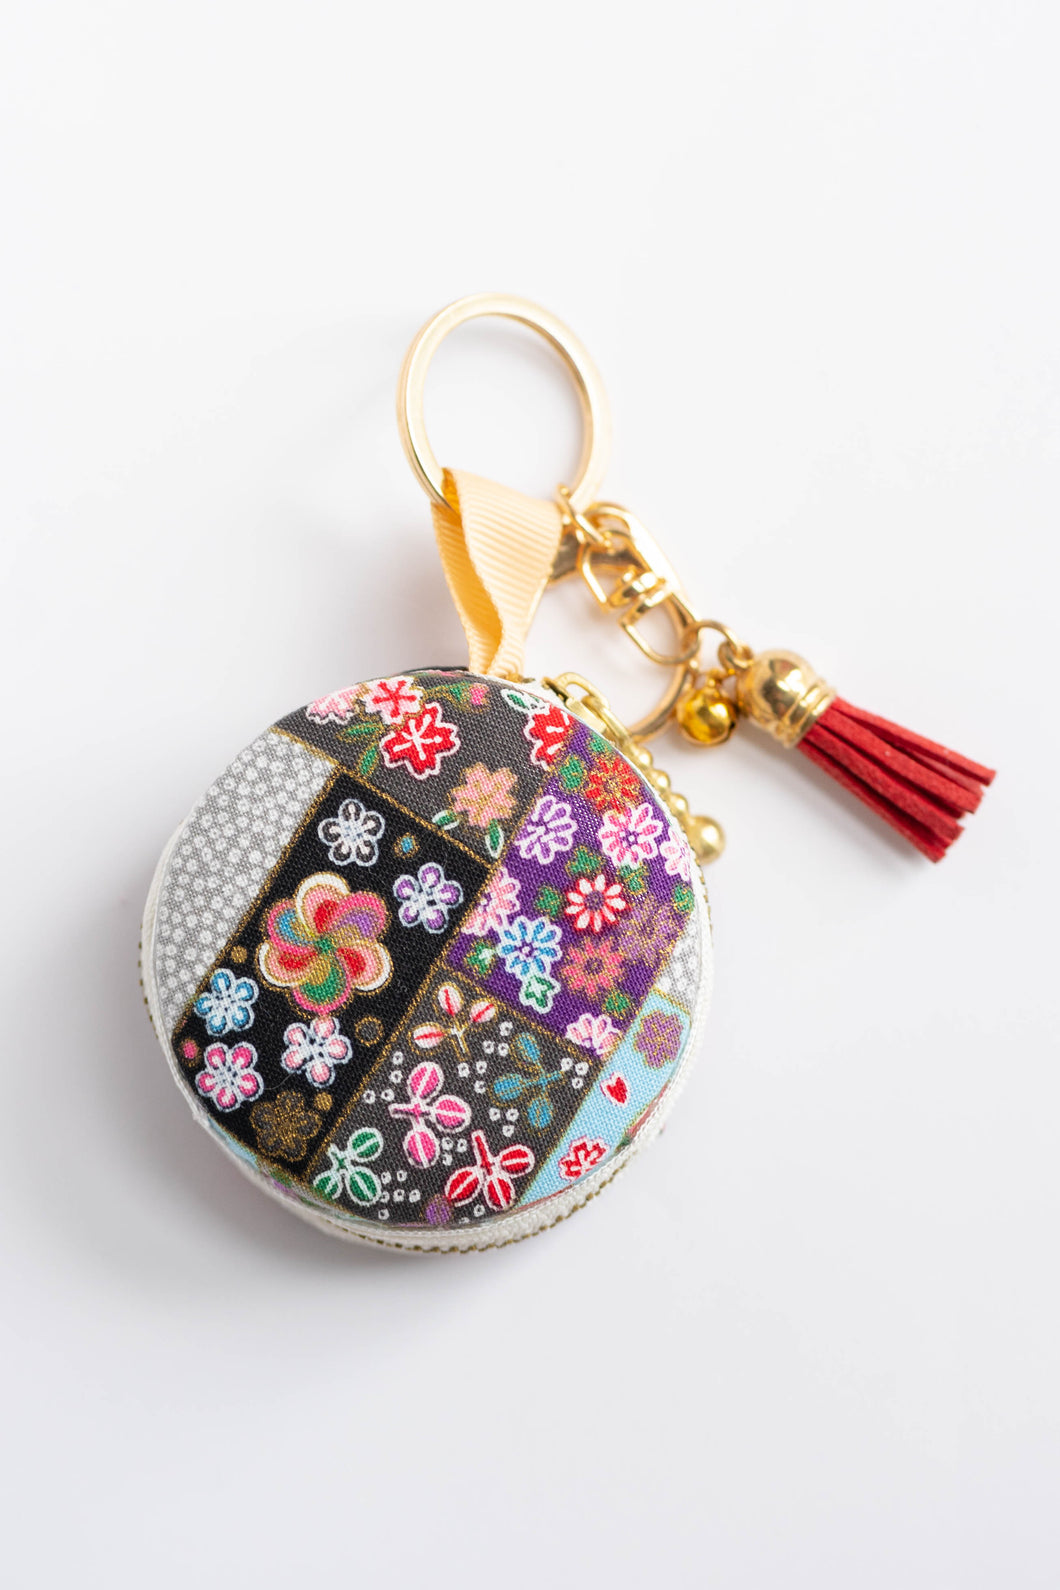 Flower Fields Macaron Pouch by Triple L S